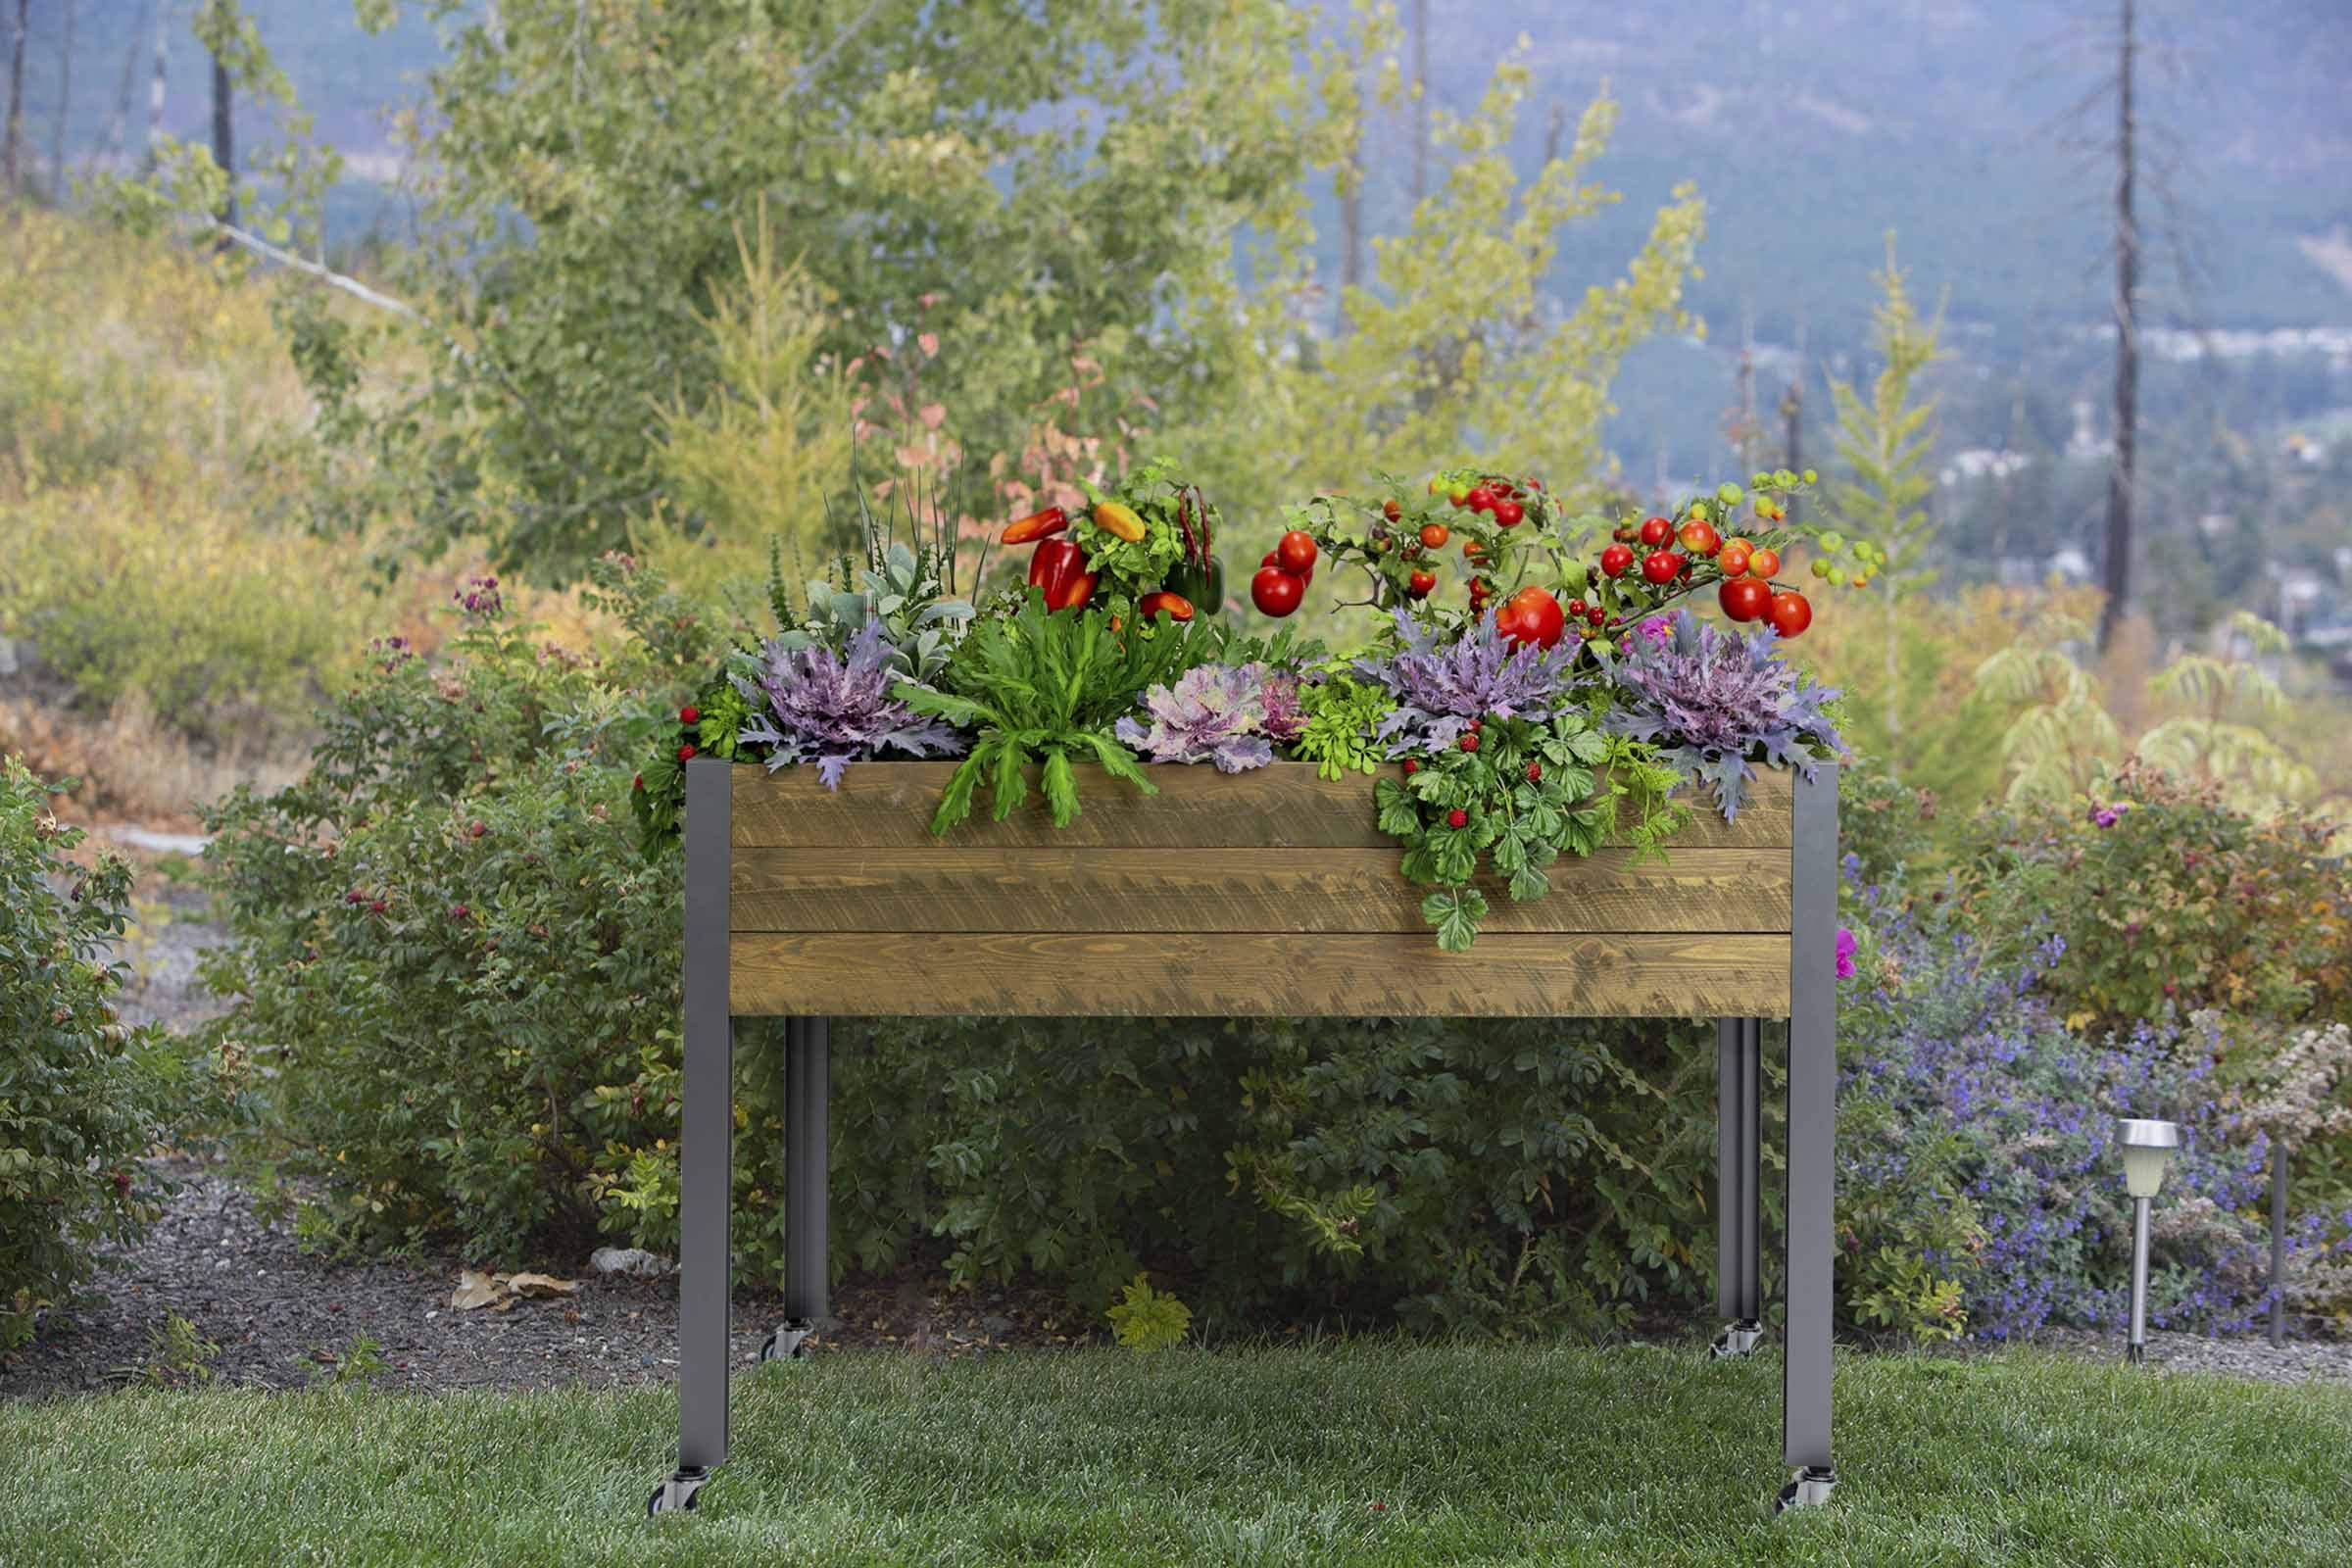 CedarCraft Self-Watering Elevated Spruce Planter (21'' x 47'' x 32''H) - The Flexibility of Container Gardening + The Convenience of a self-Watering System. Grow Healthier, More Productive Plants. by CedarCraft (Image #7)